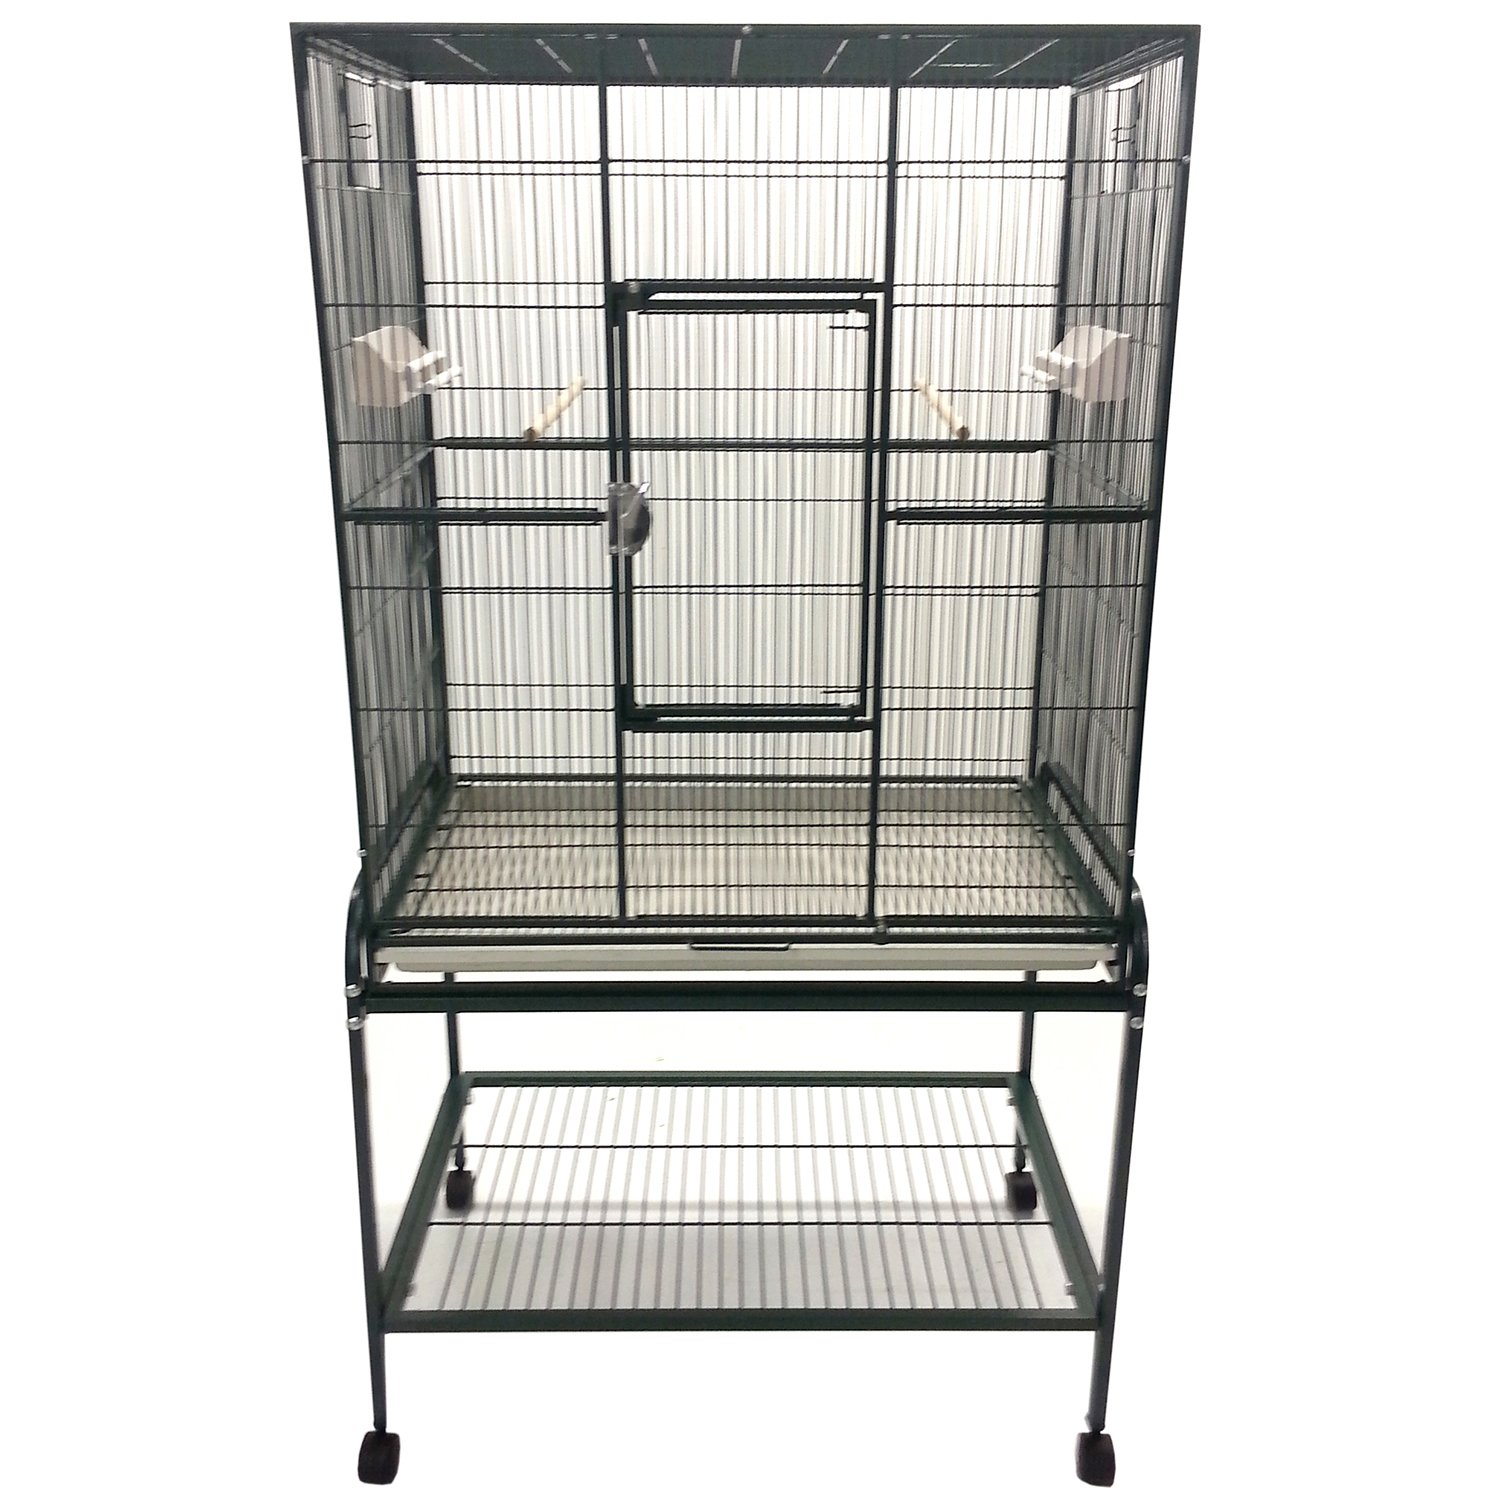 A&E Cage Company Flight Bird Cage in Green